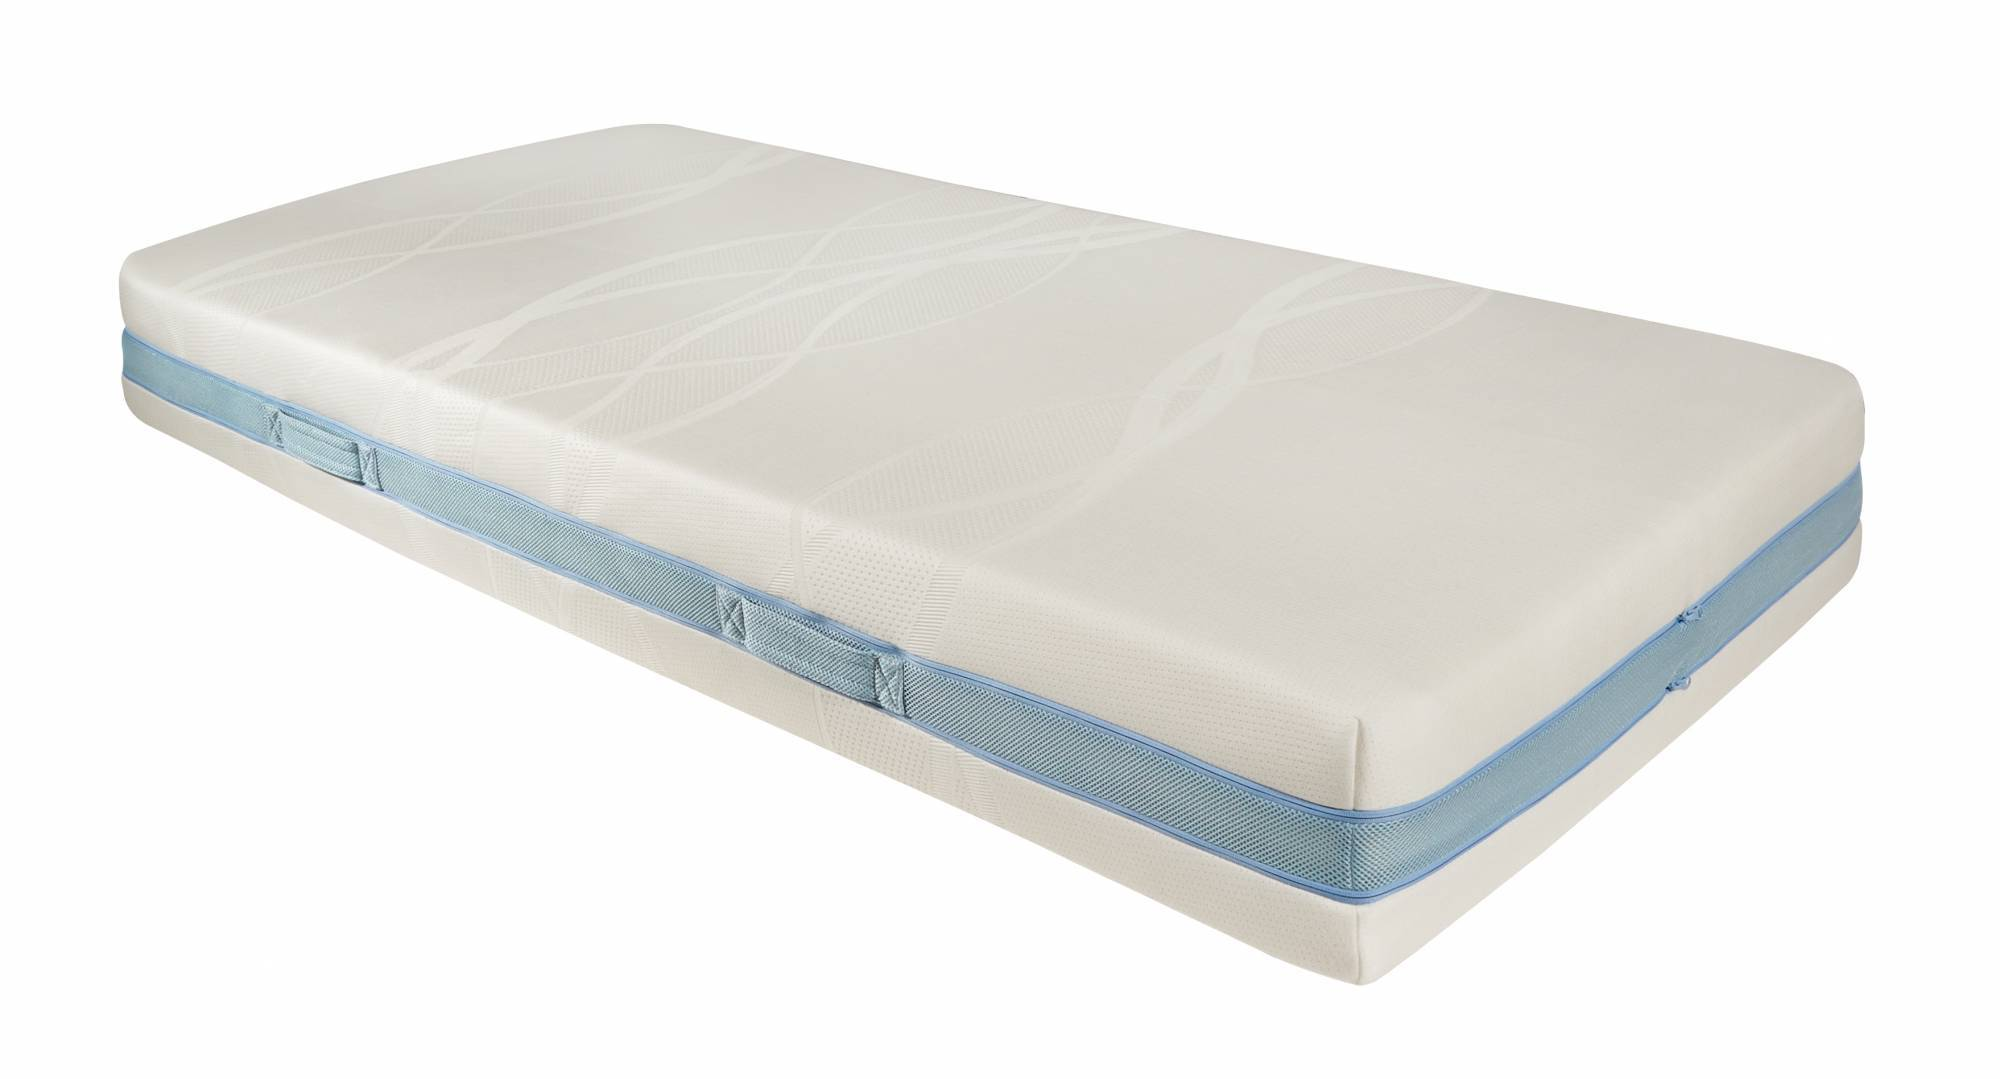 Yanis Traditional Dunlop Latex Pillow : Yanis Sensation 2000 Latex Mattress - Latex Pocket Sprung Mattresses - Latex Sense